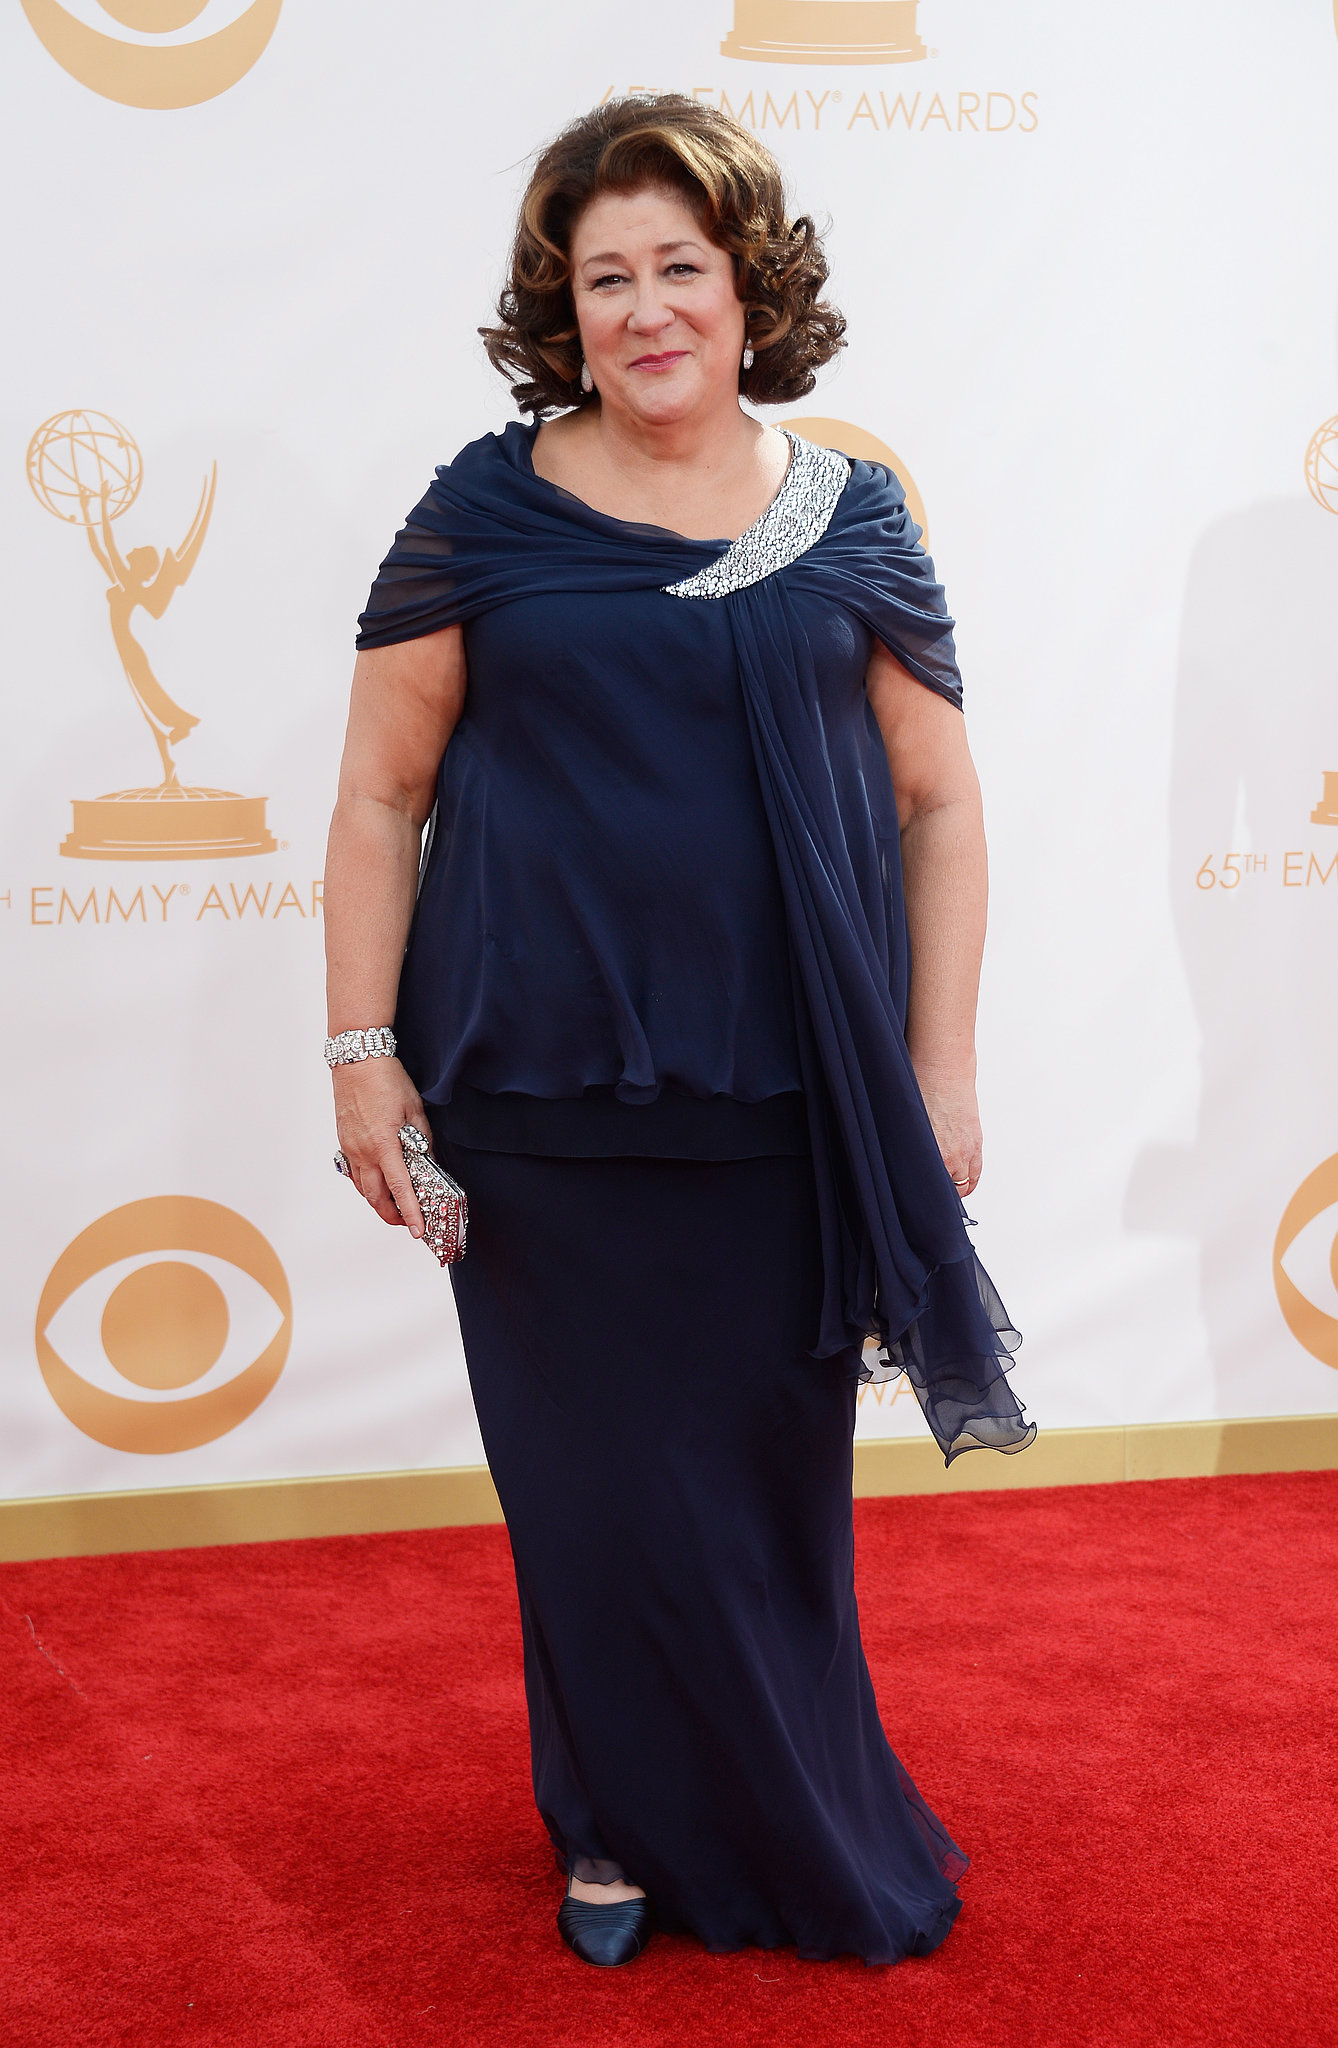 Margo Martindale attended the 2013 Emmy Awards.